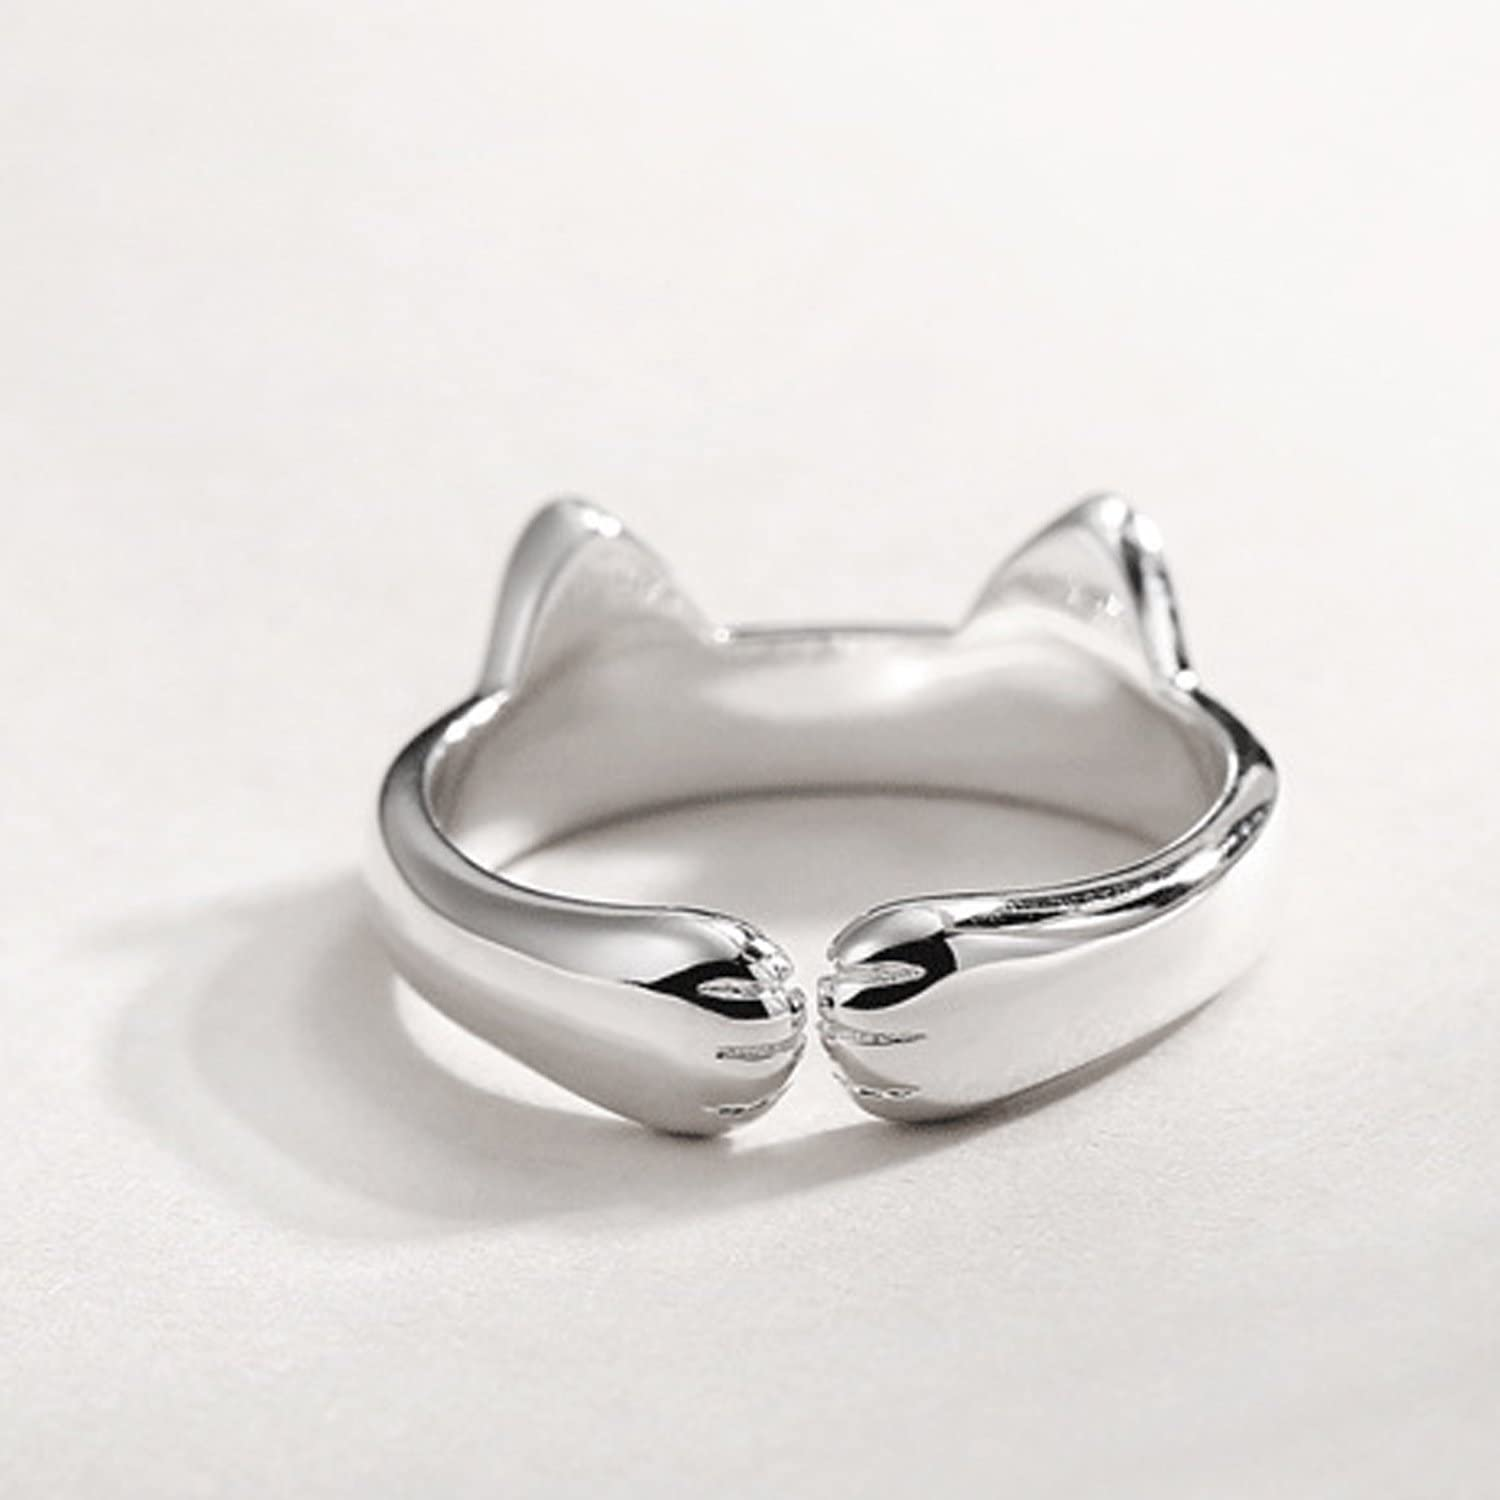 Open Jeweled Rings 925 Sterling Silver Liara Polished and Nickel Free